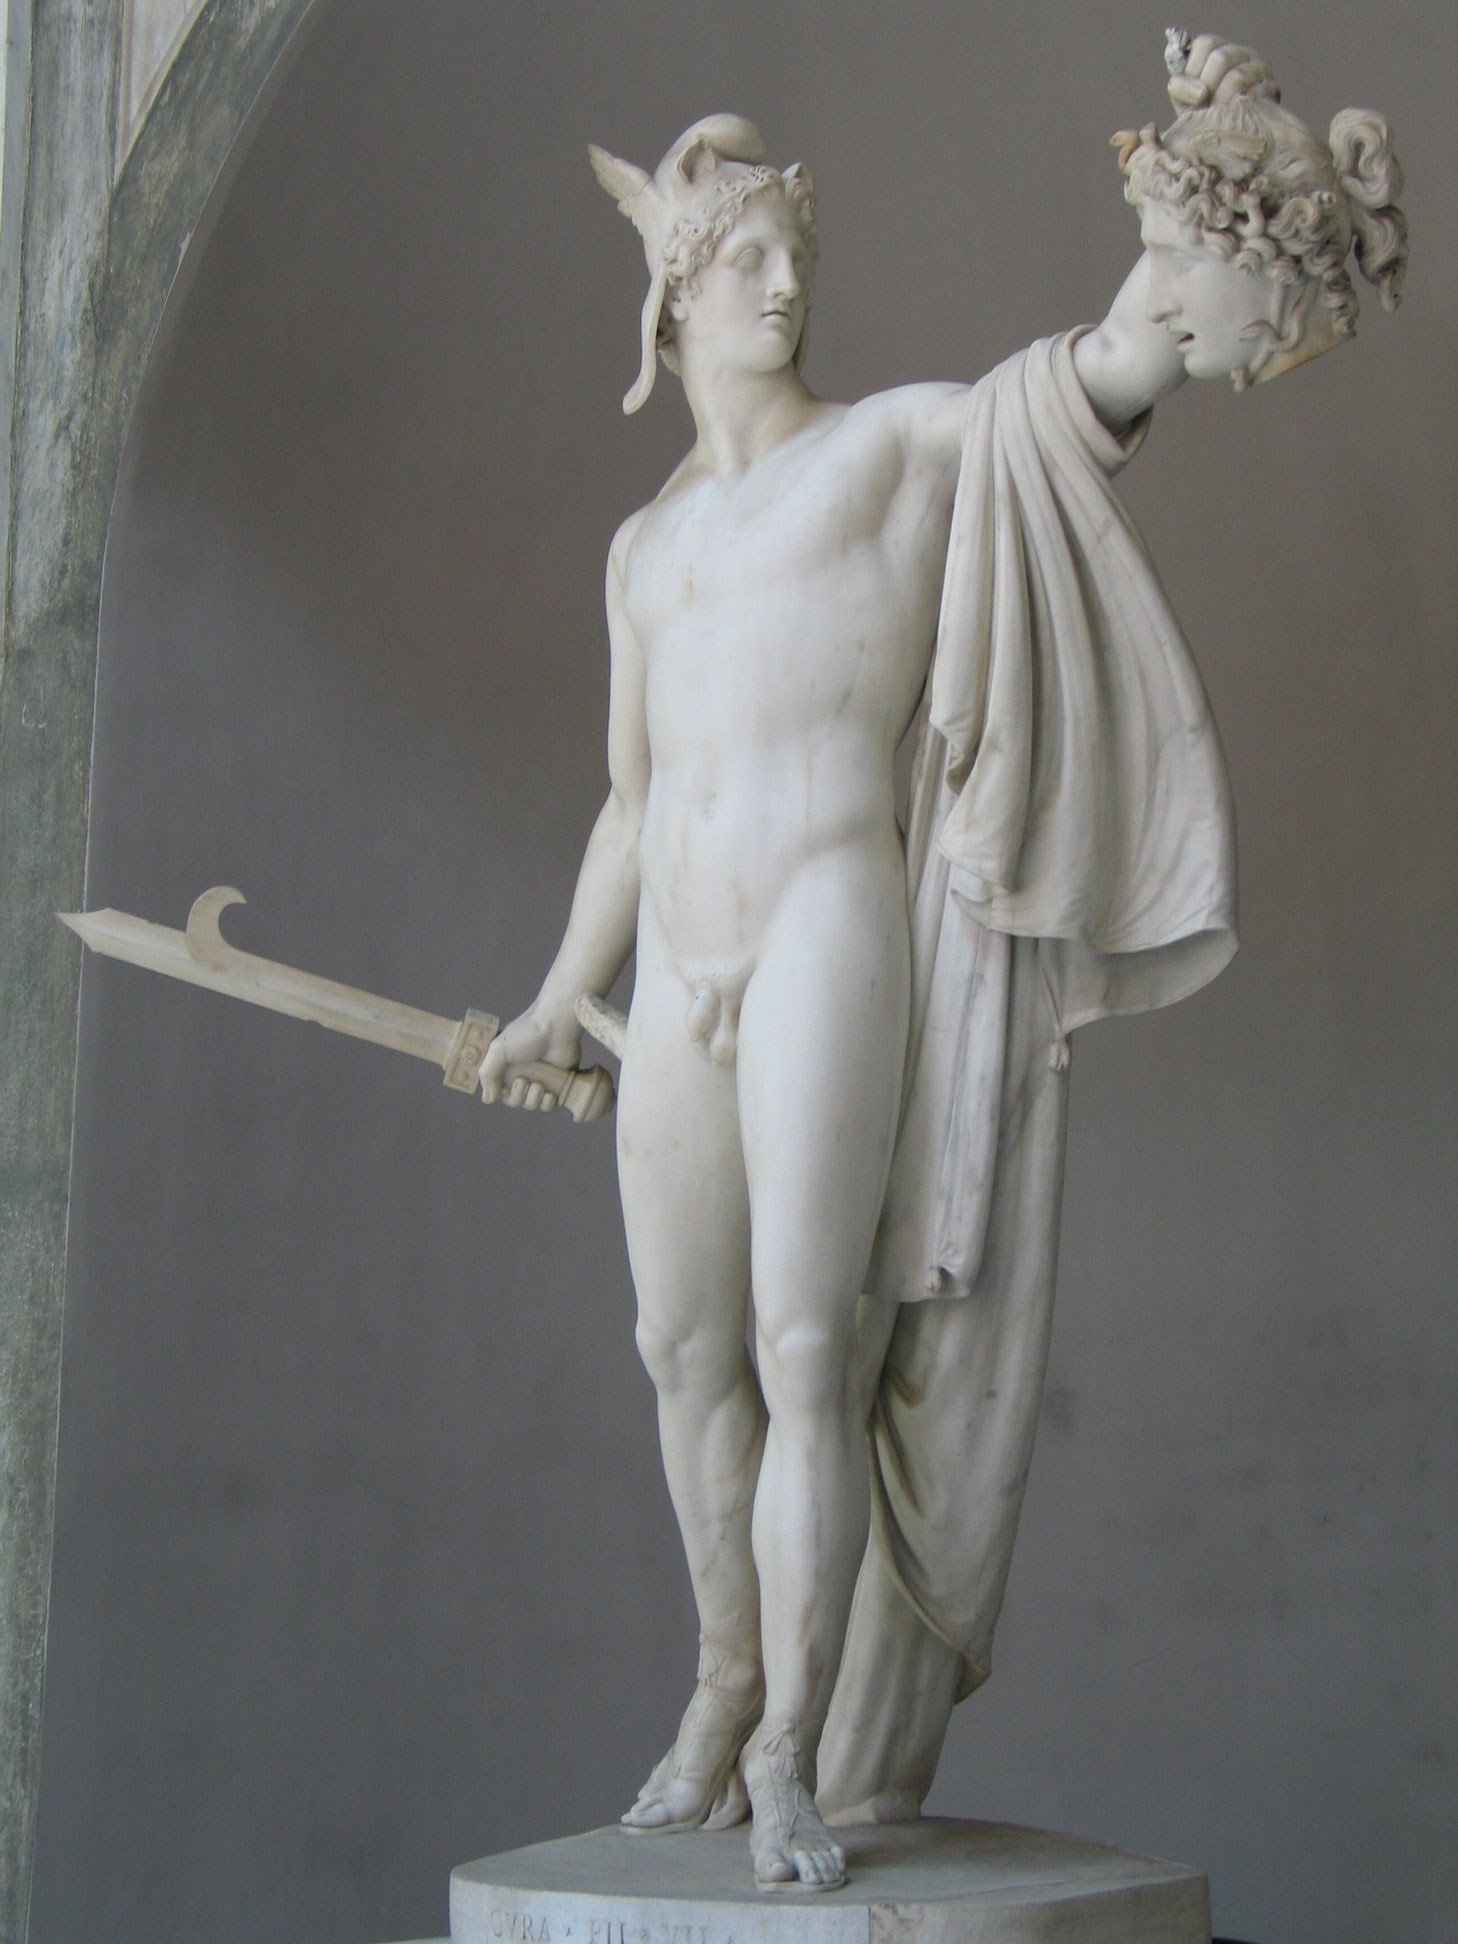 Perseus, the legendary Medusa killer! Image from Wikipedia, licensed under the Creative Commons Attribution ShareAlike 3.0 License.